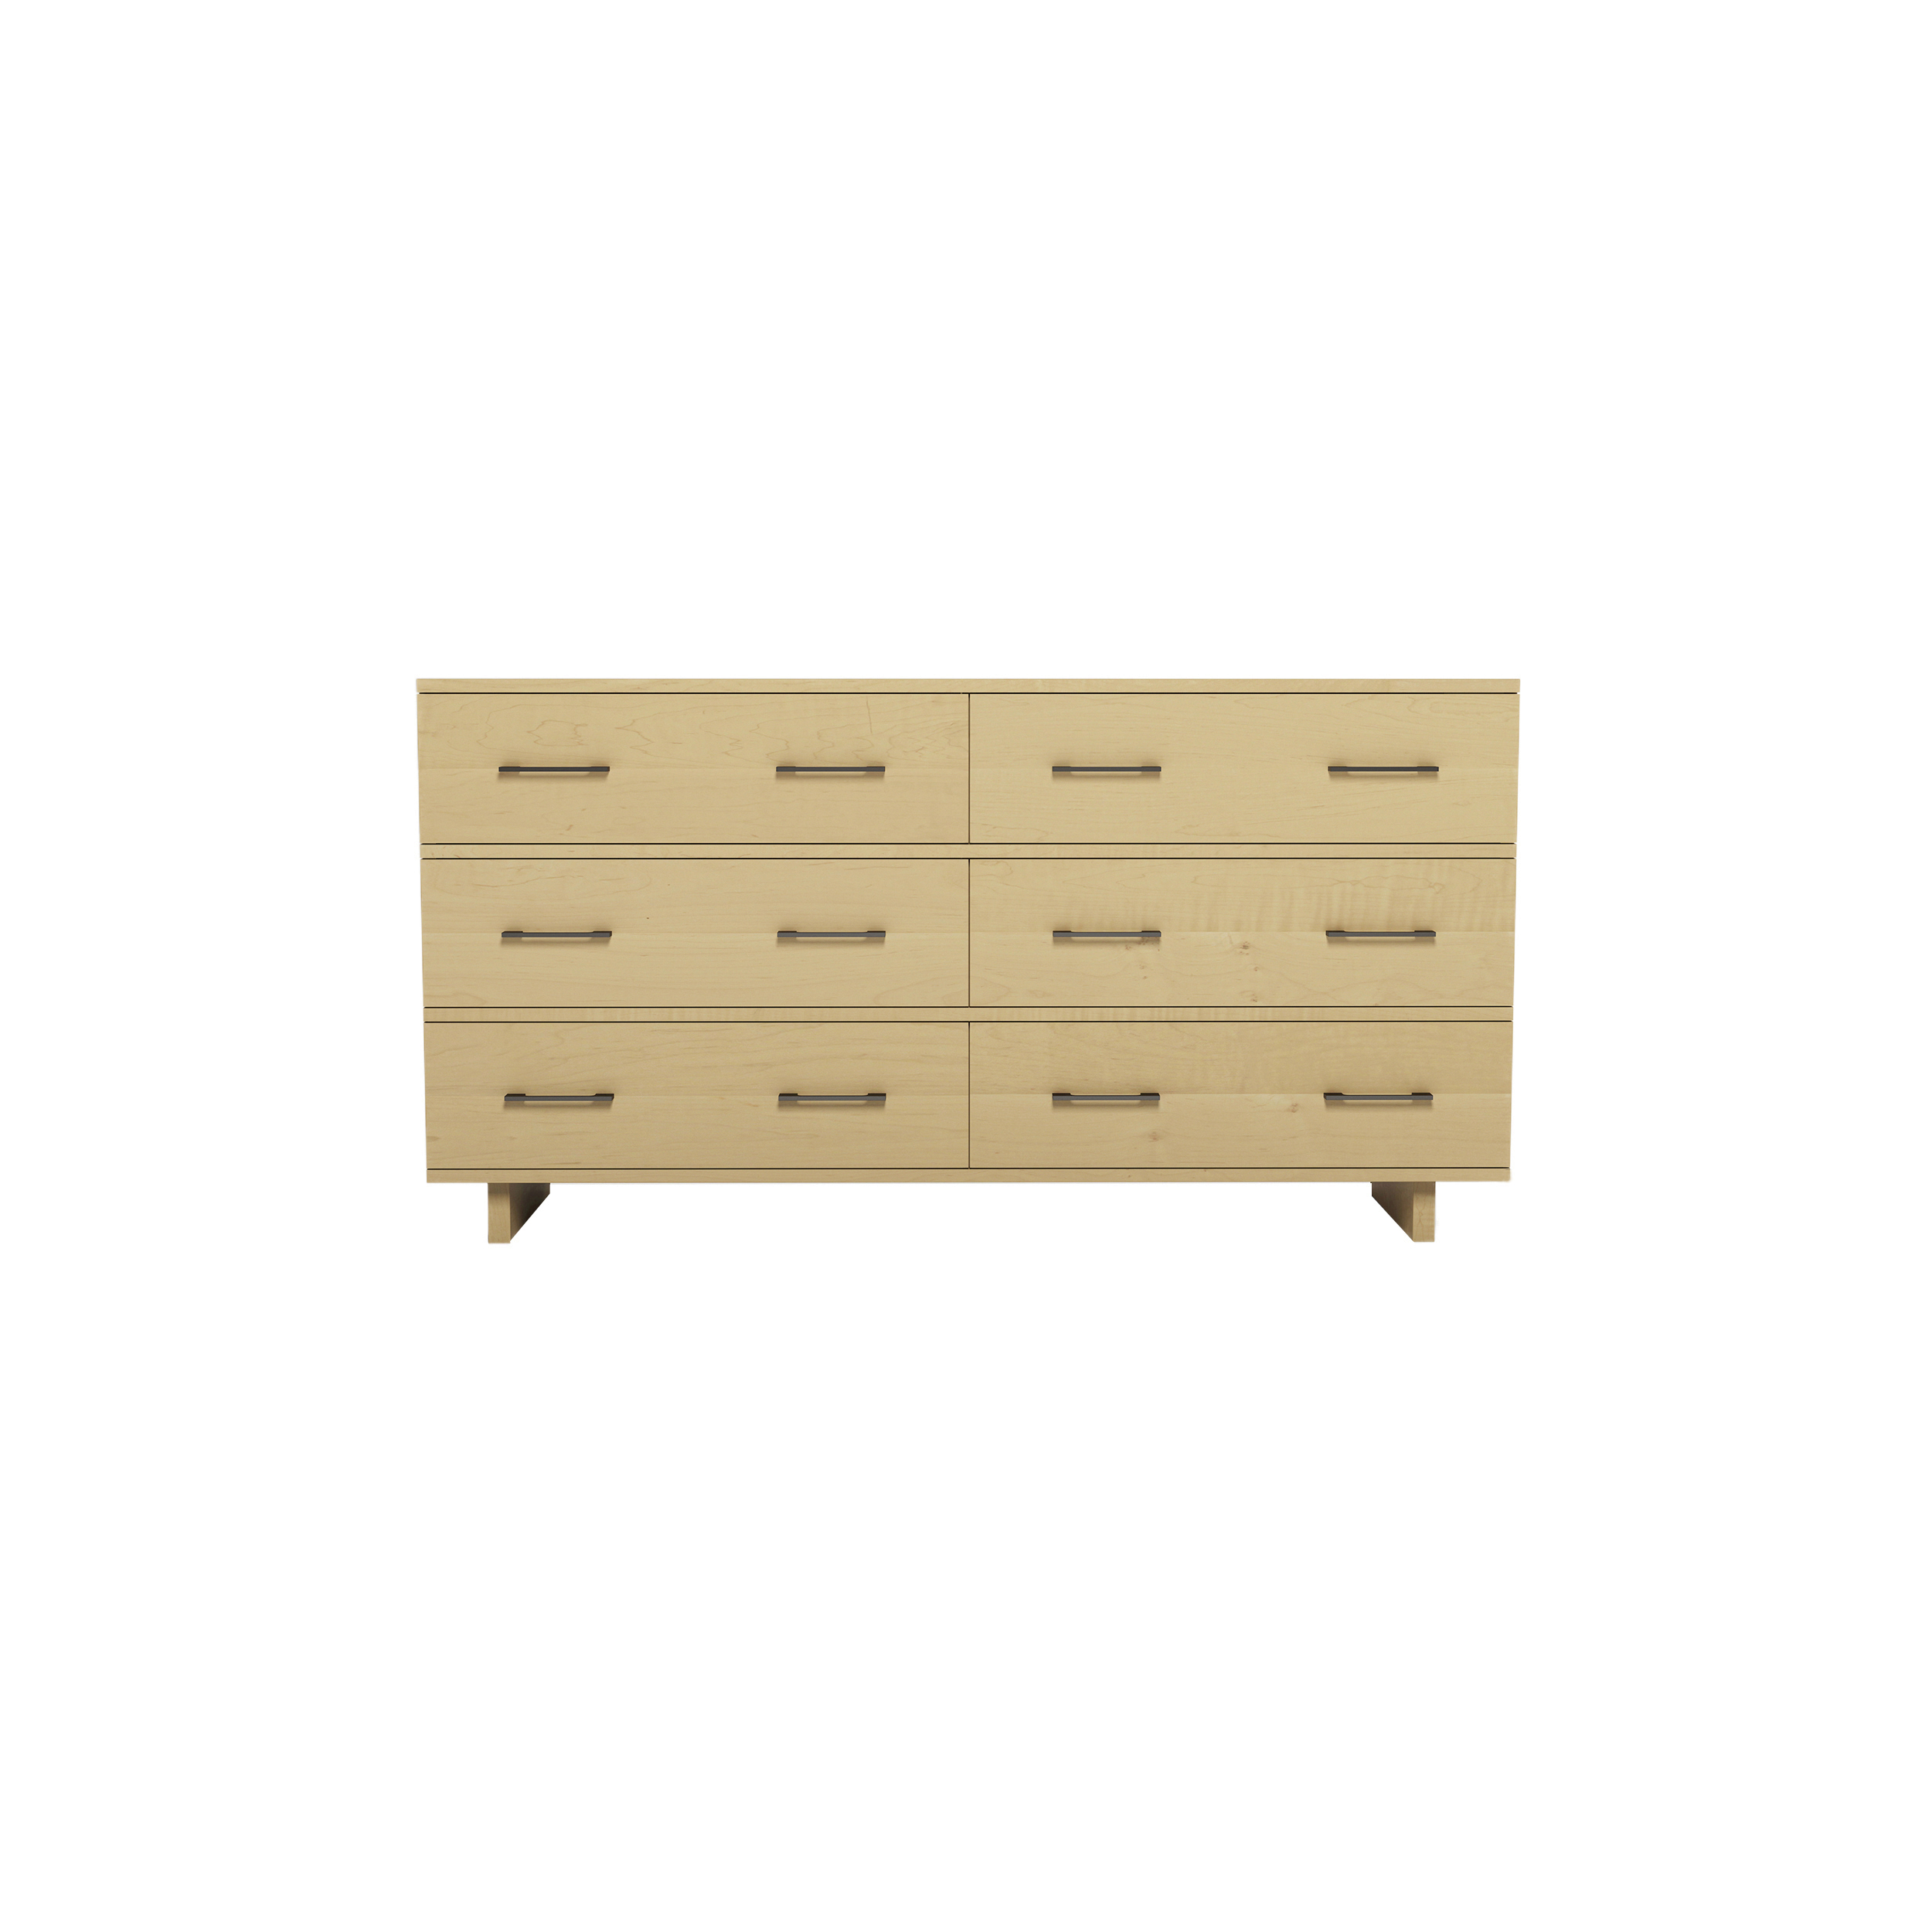 Series 252 Dresser With Six Drawers At 60″ In Width